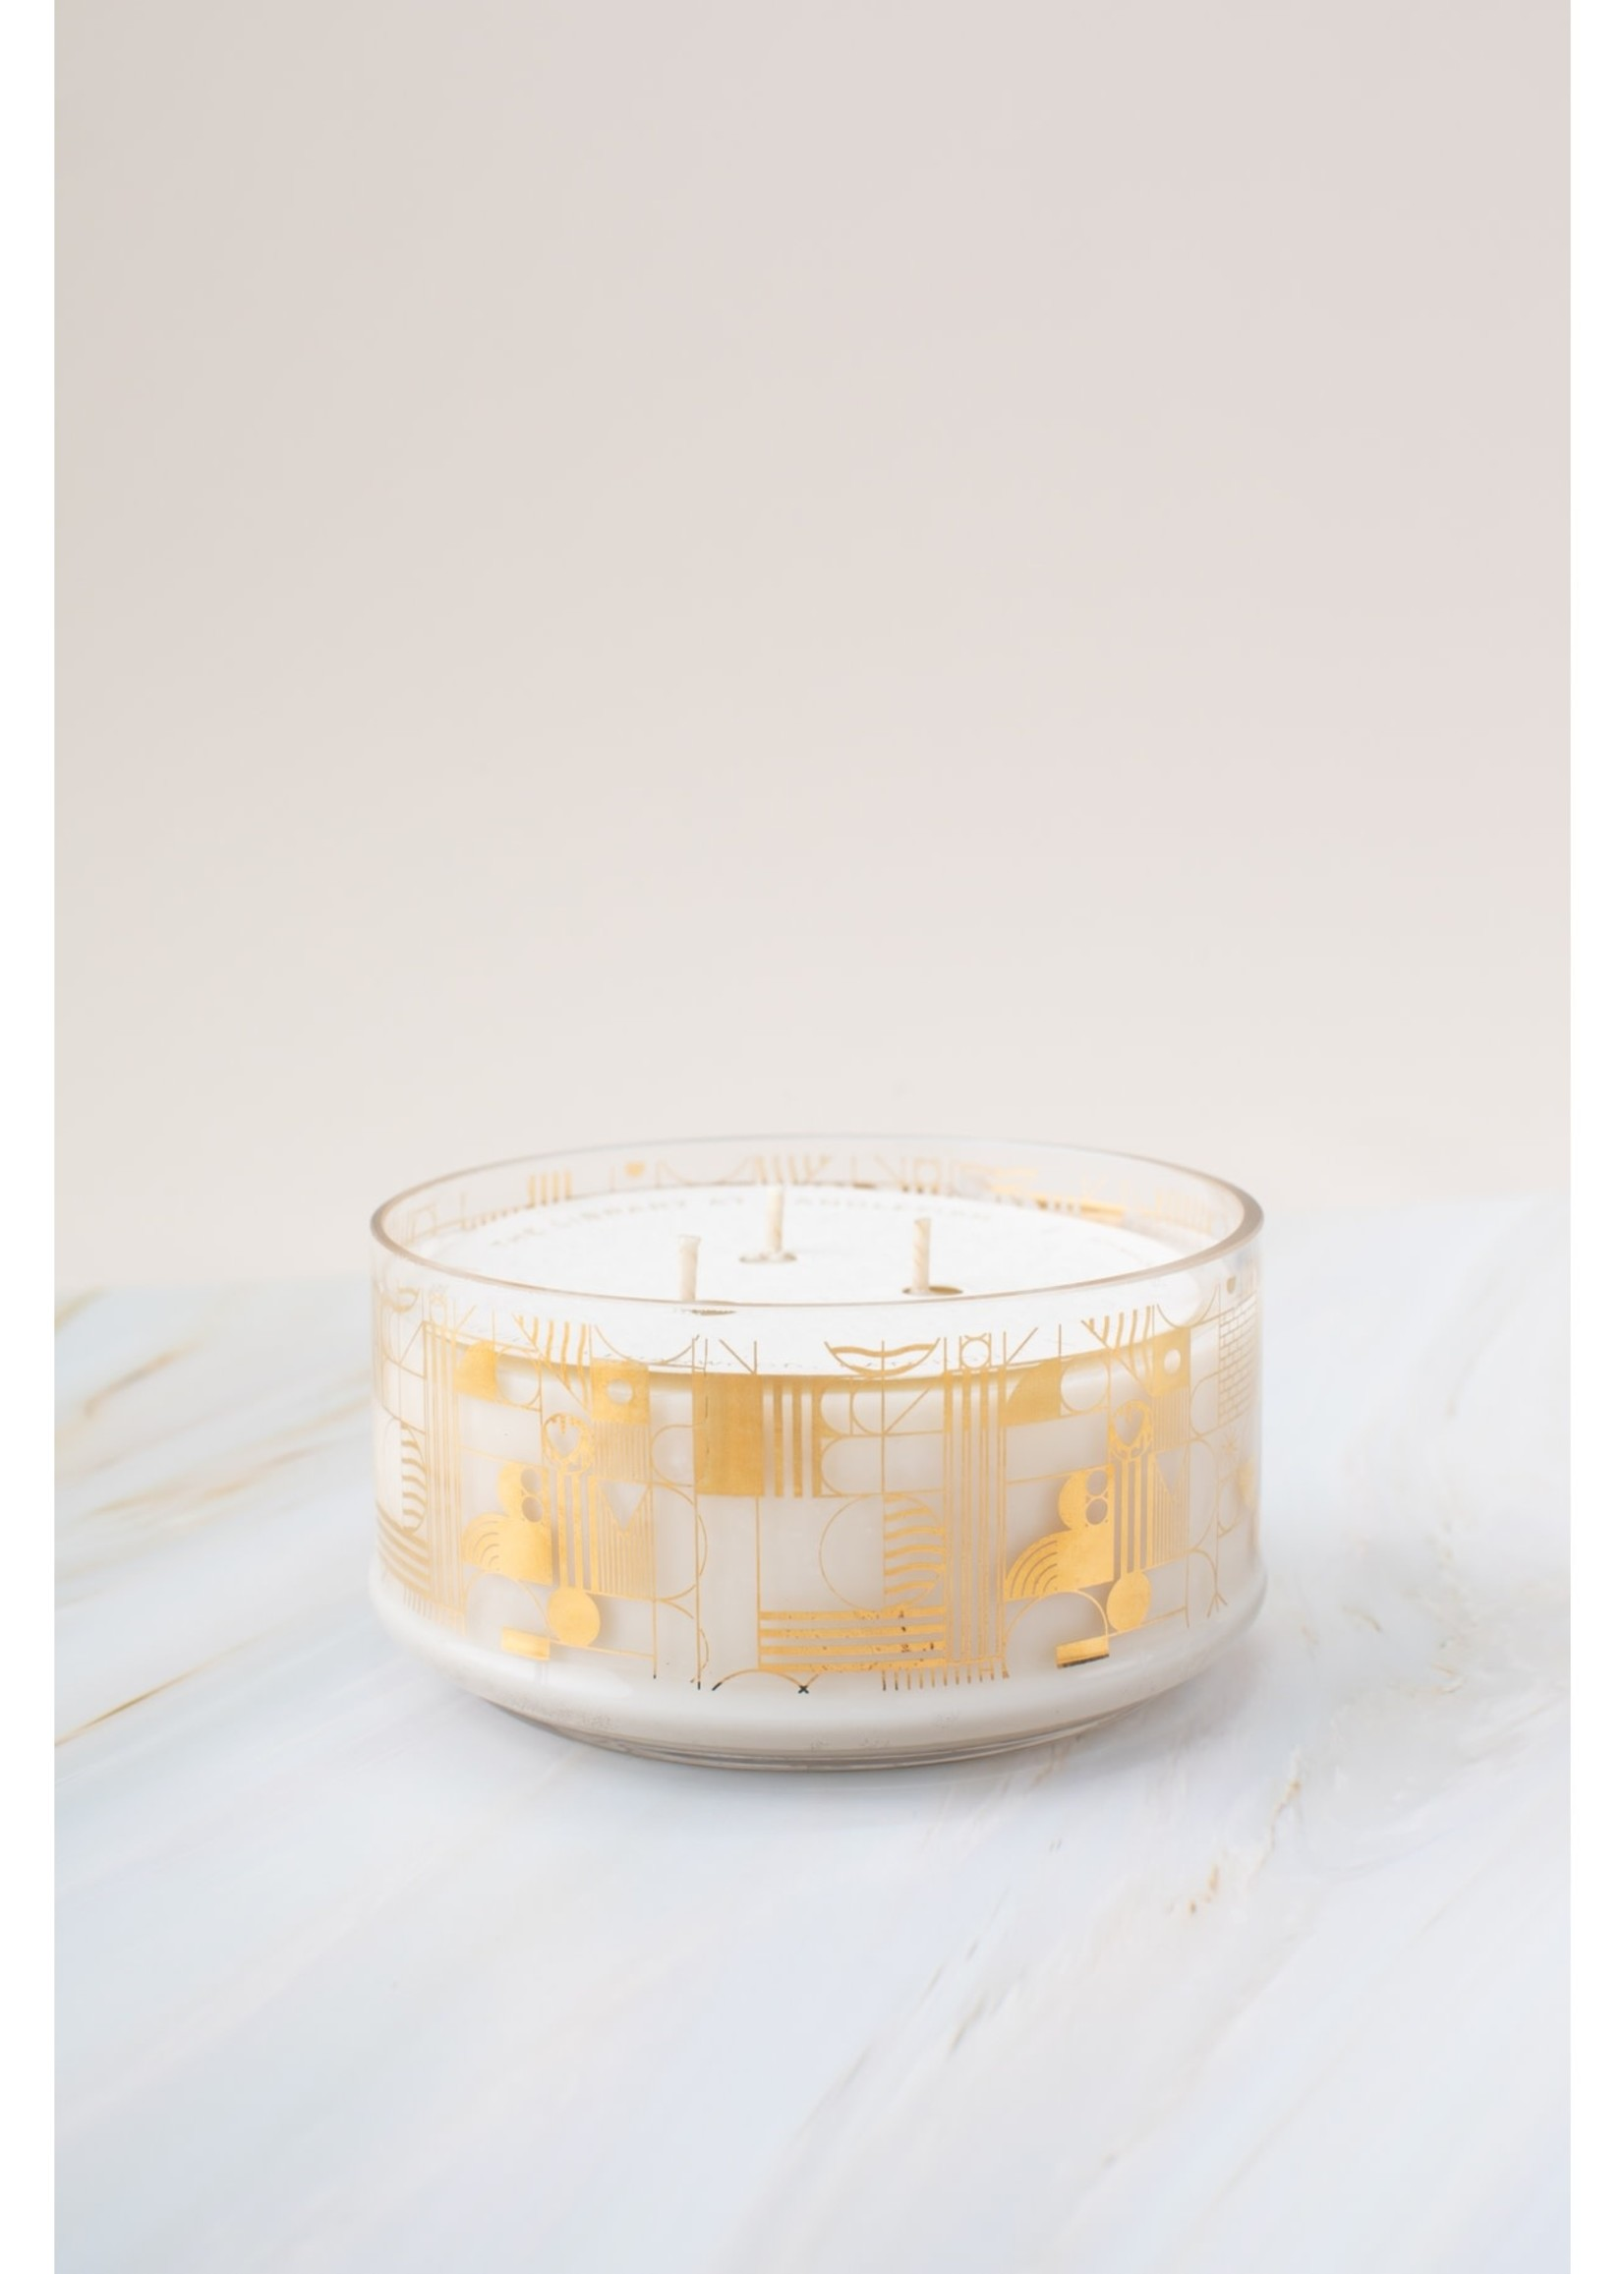 No. 68 Gold Geo Glass Candle 12 oz